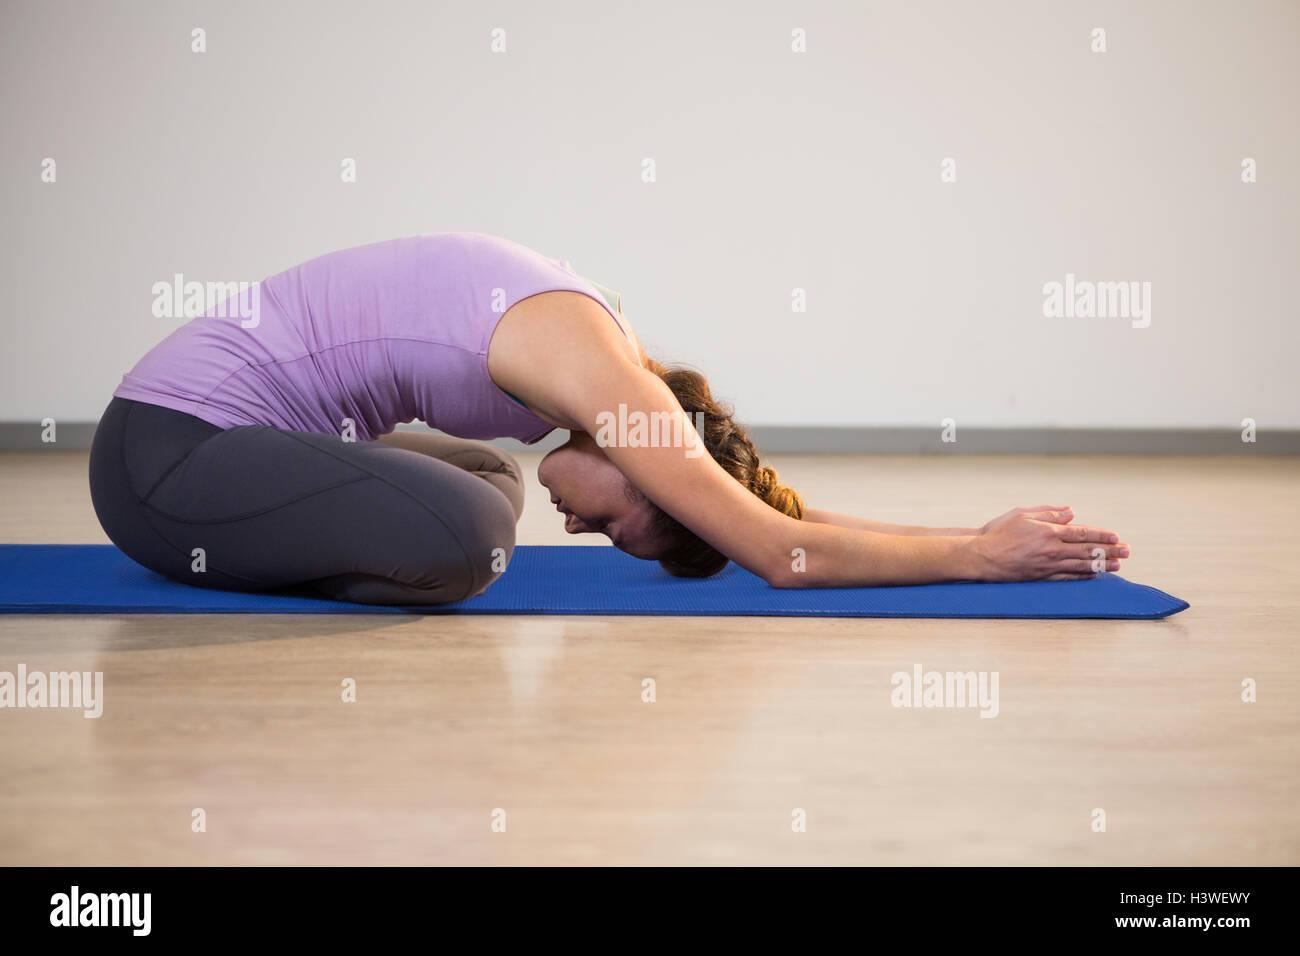 Woman doing yoga child pose on exercise mat Stock Photo